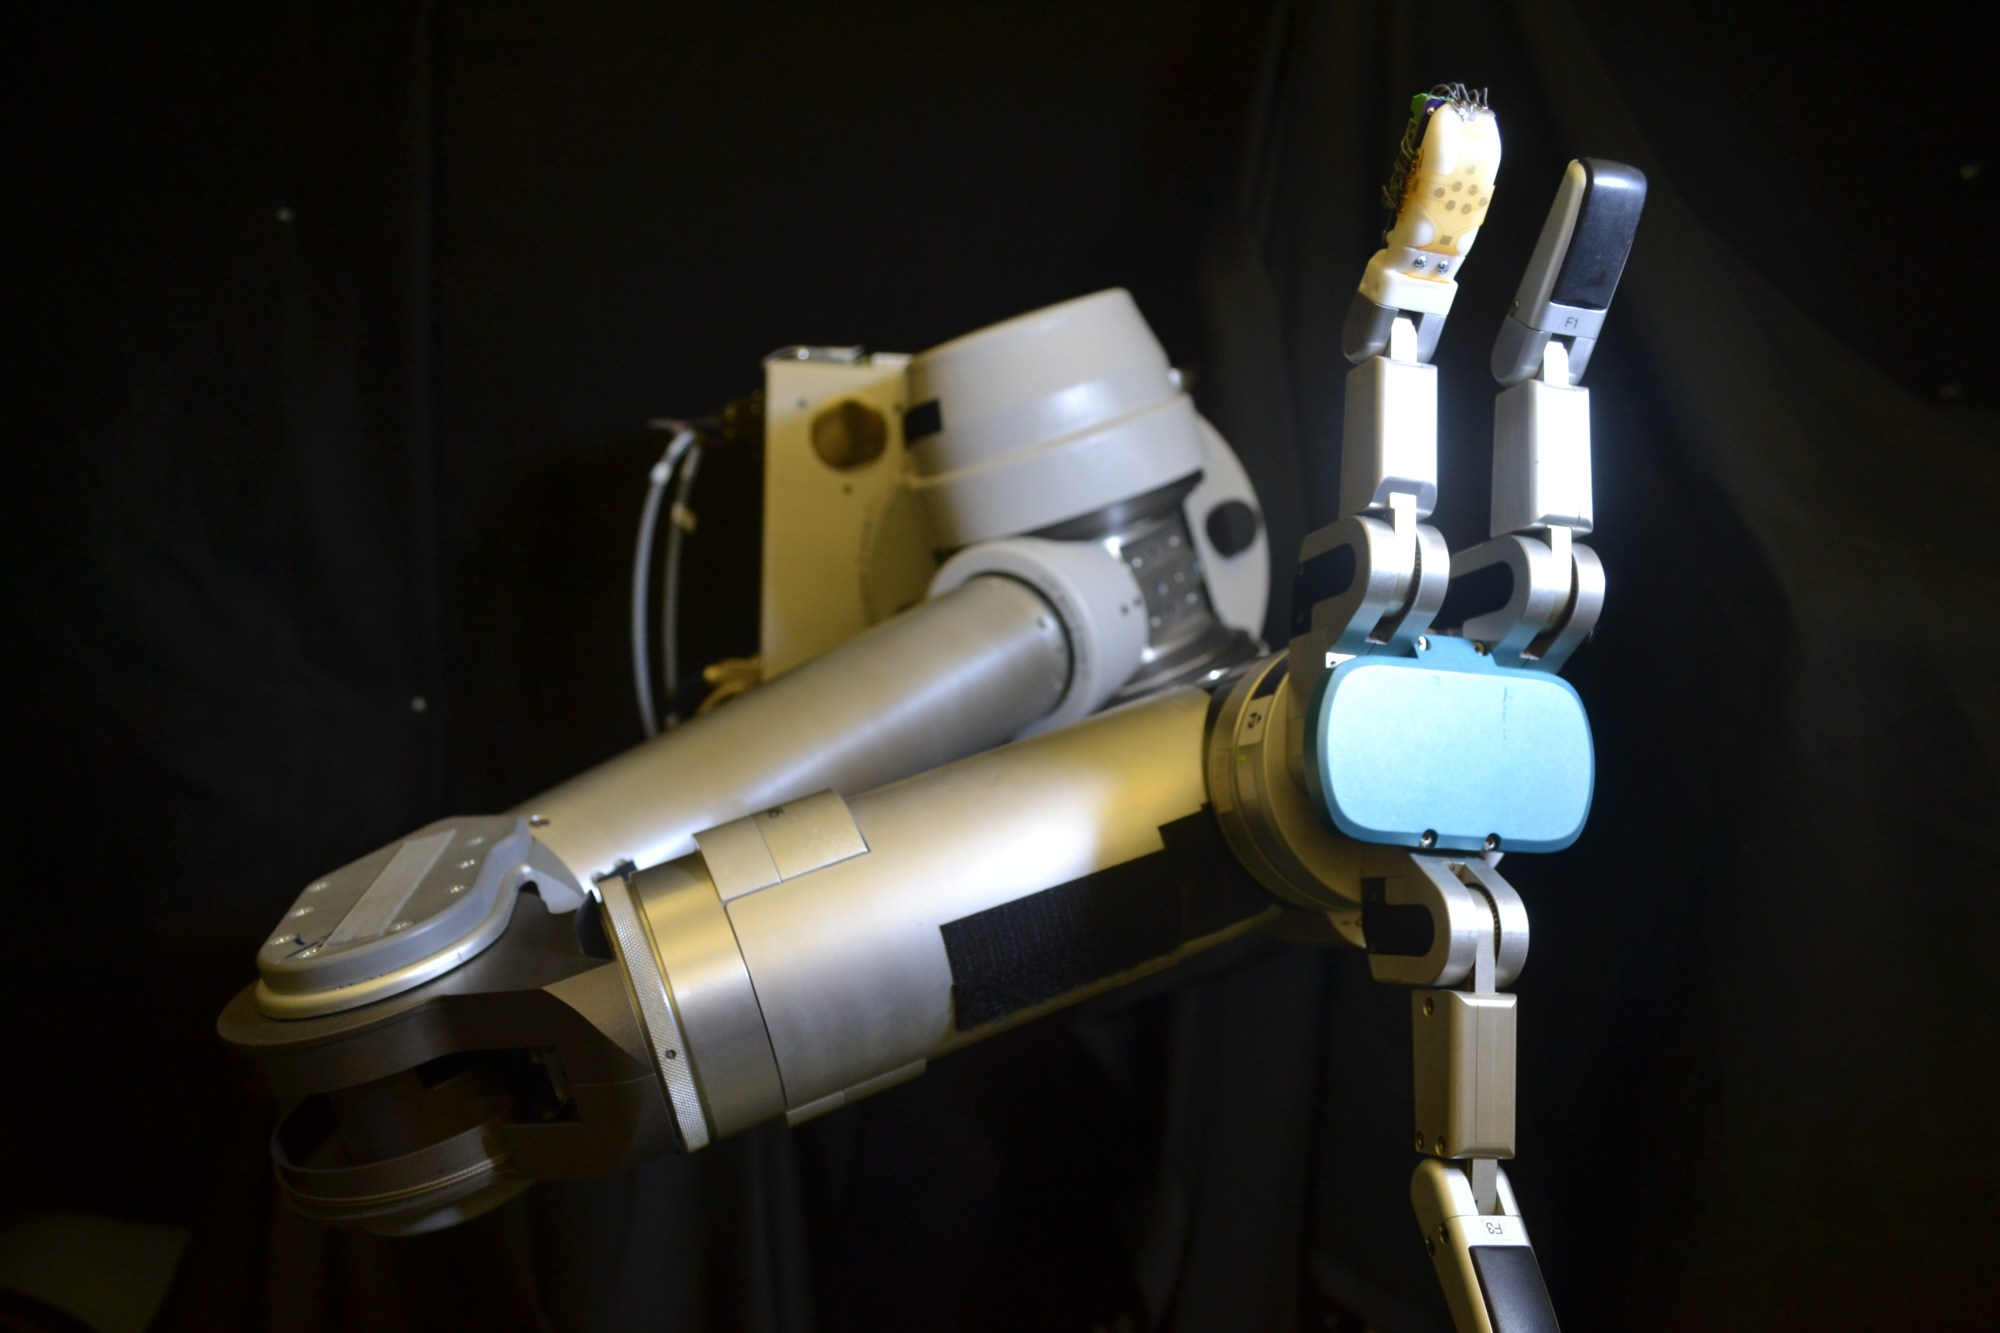 hight resolution of photo of robot arm with skin on finger